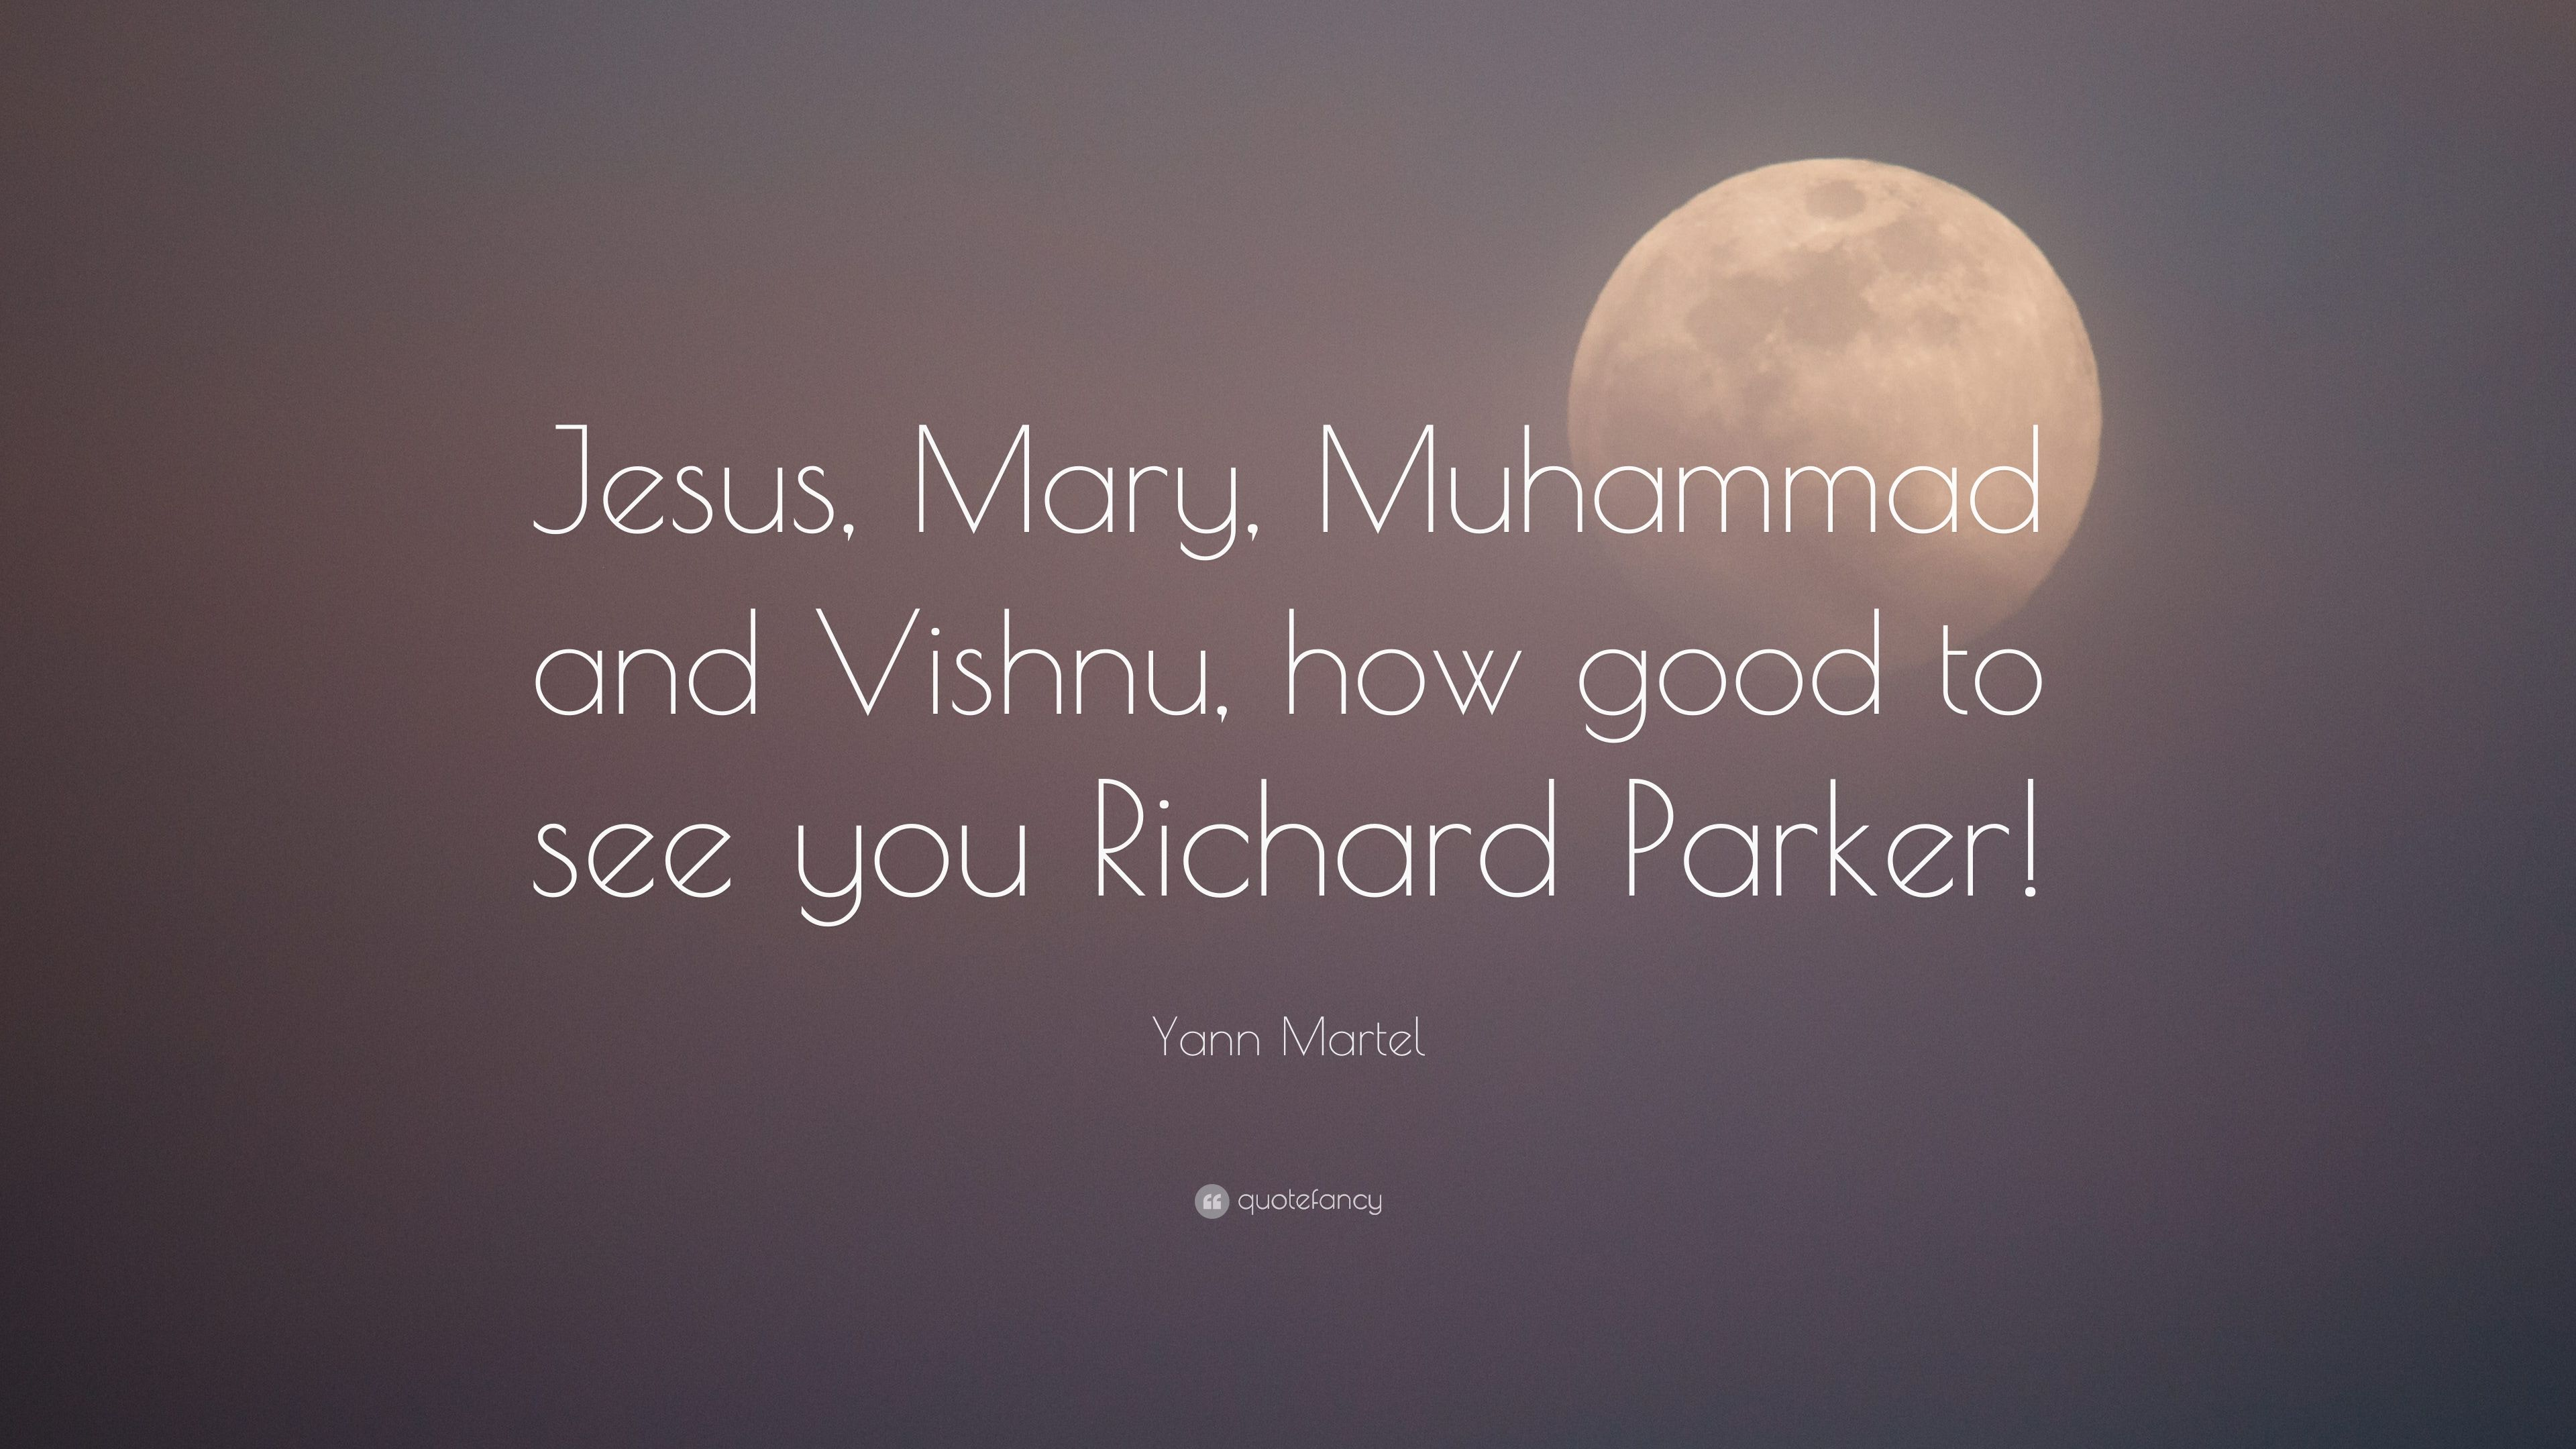 jesus mary muhammad and vishnu Discover the history, beliefs, customs, and practices of islam, a monotheistic faith practiced by millions around the globe.